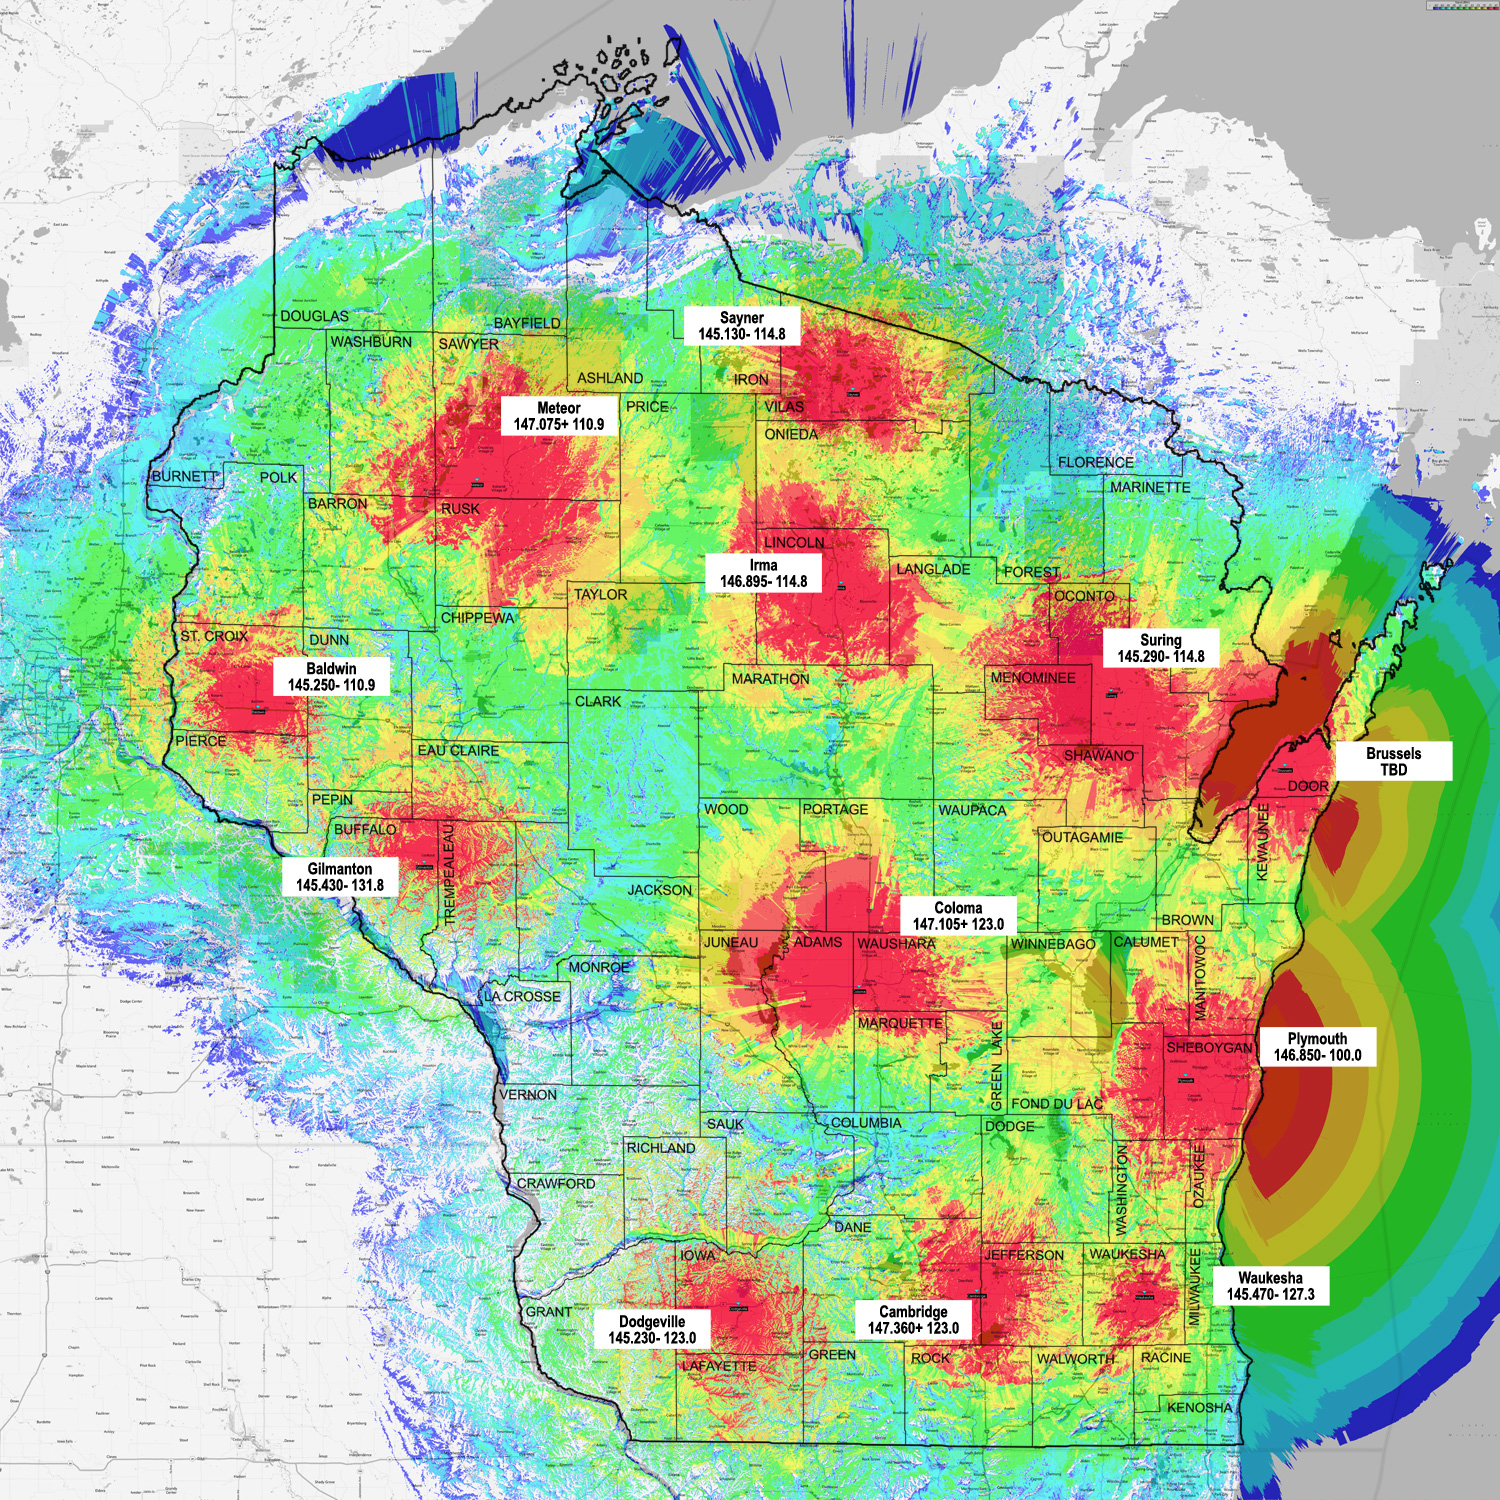 WeComm-Composite-Network-Coverage-Map